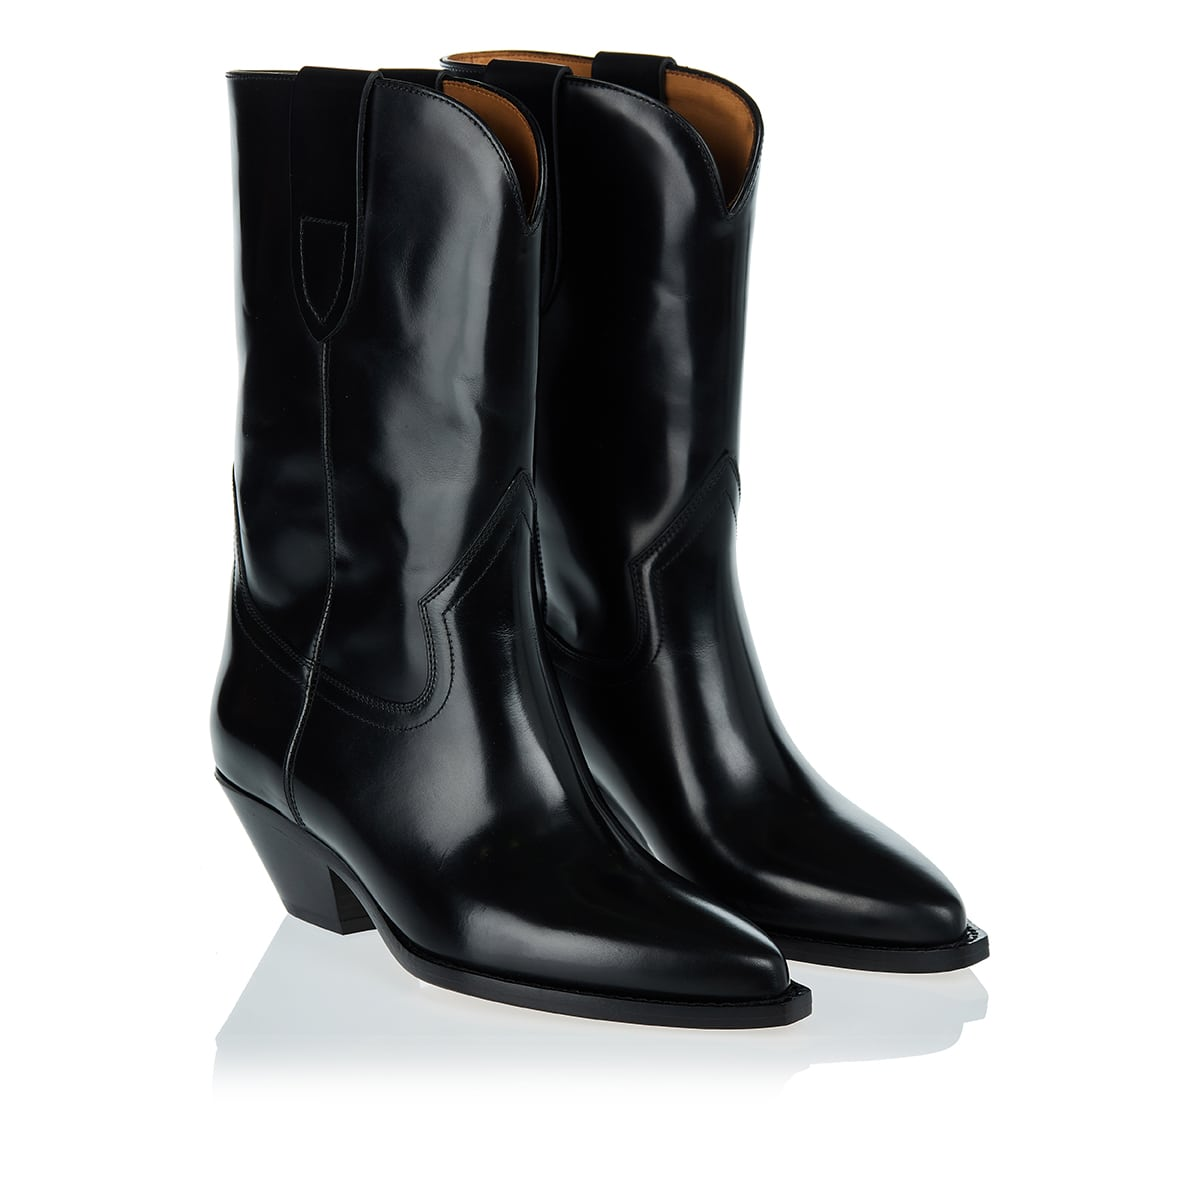 Dahope leather Western boots